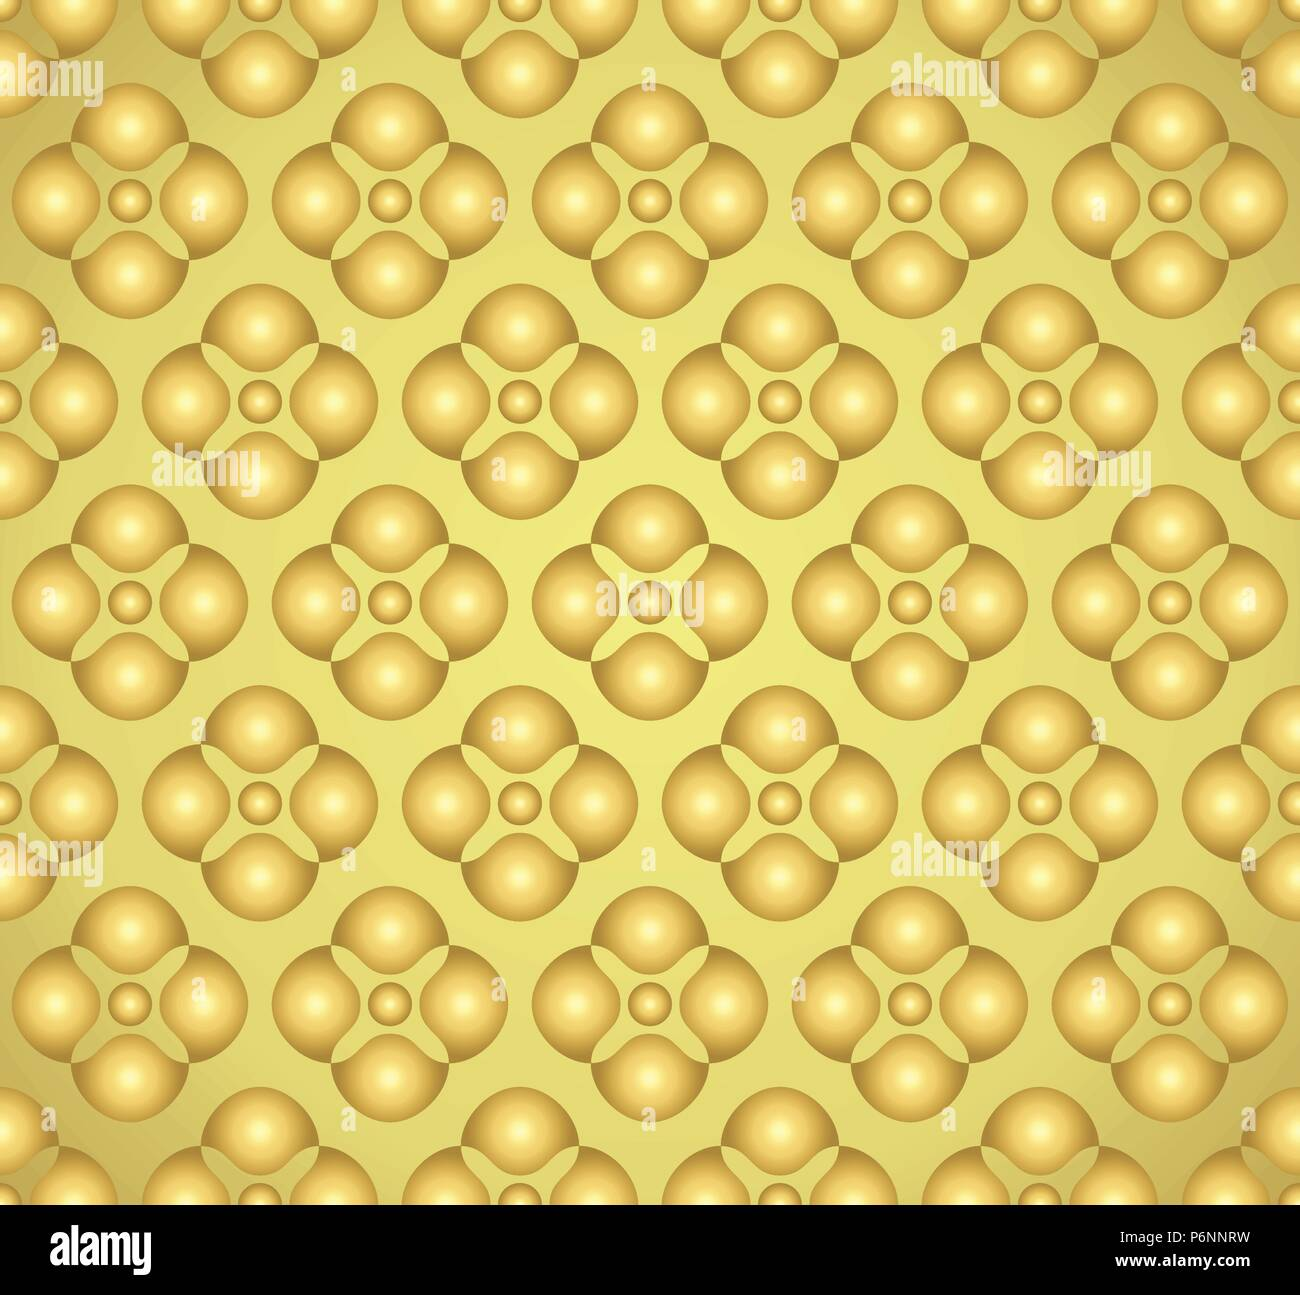 Gold Abstract blossom and small circle seamless pattern on pastel background. Vintage and sweet flower pattern for modern or graphic design. - Stock Image